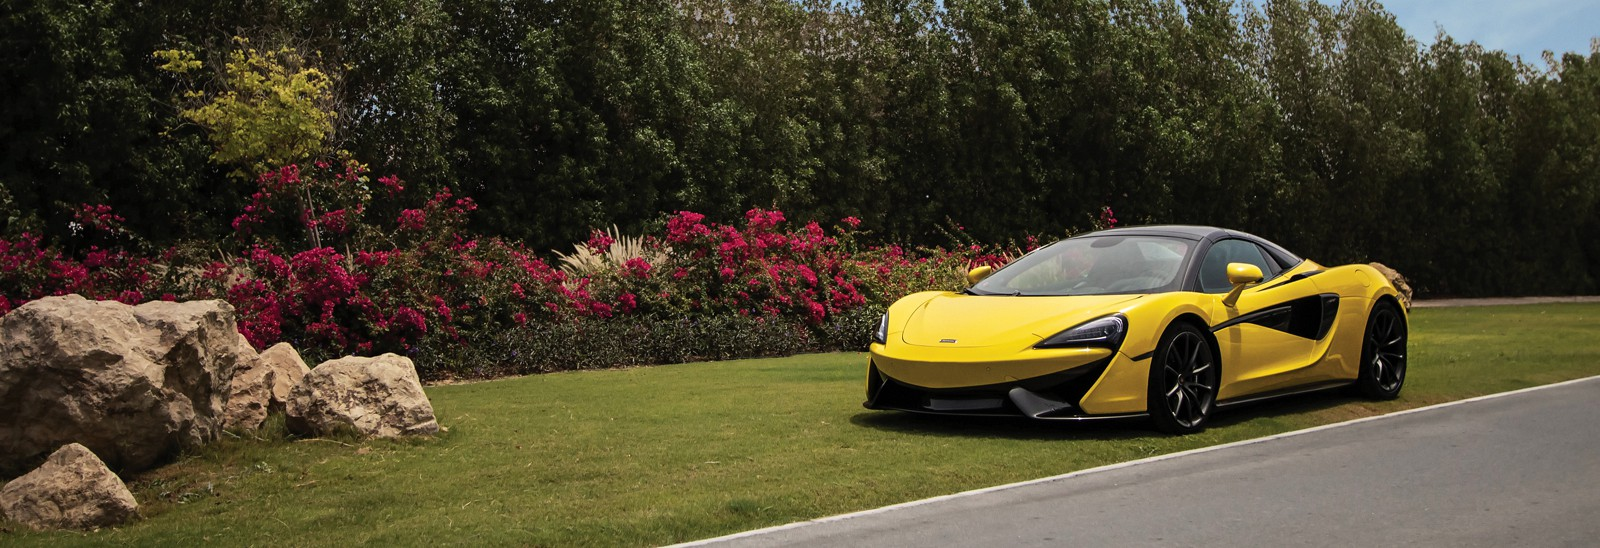 Along comes the Spider: the new McLaren 570S Spider